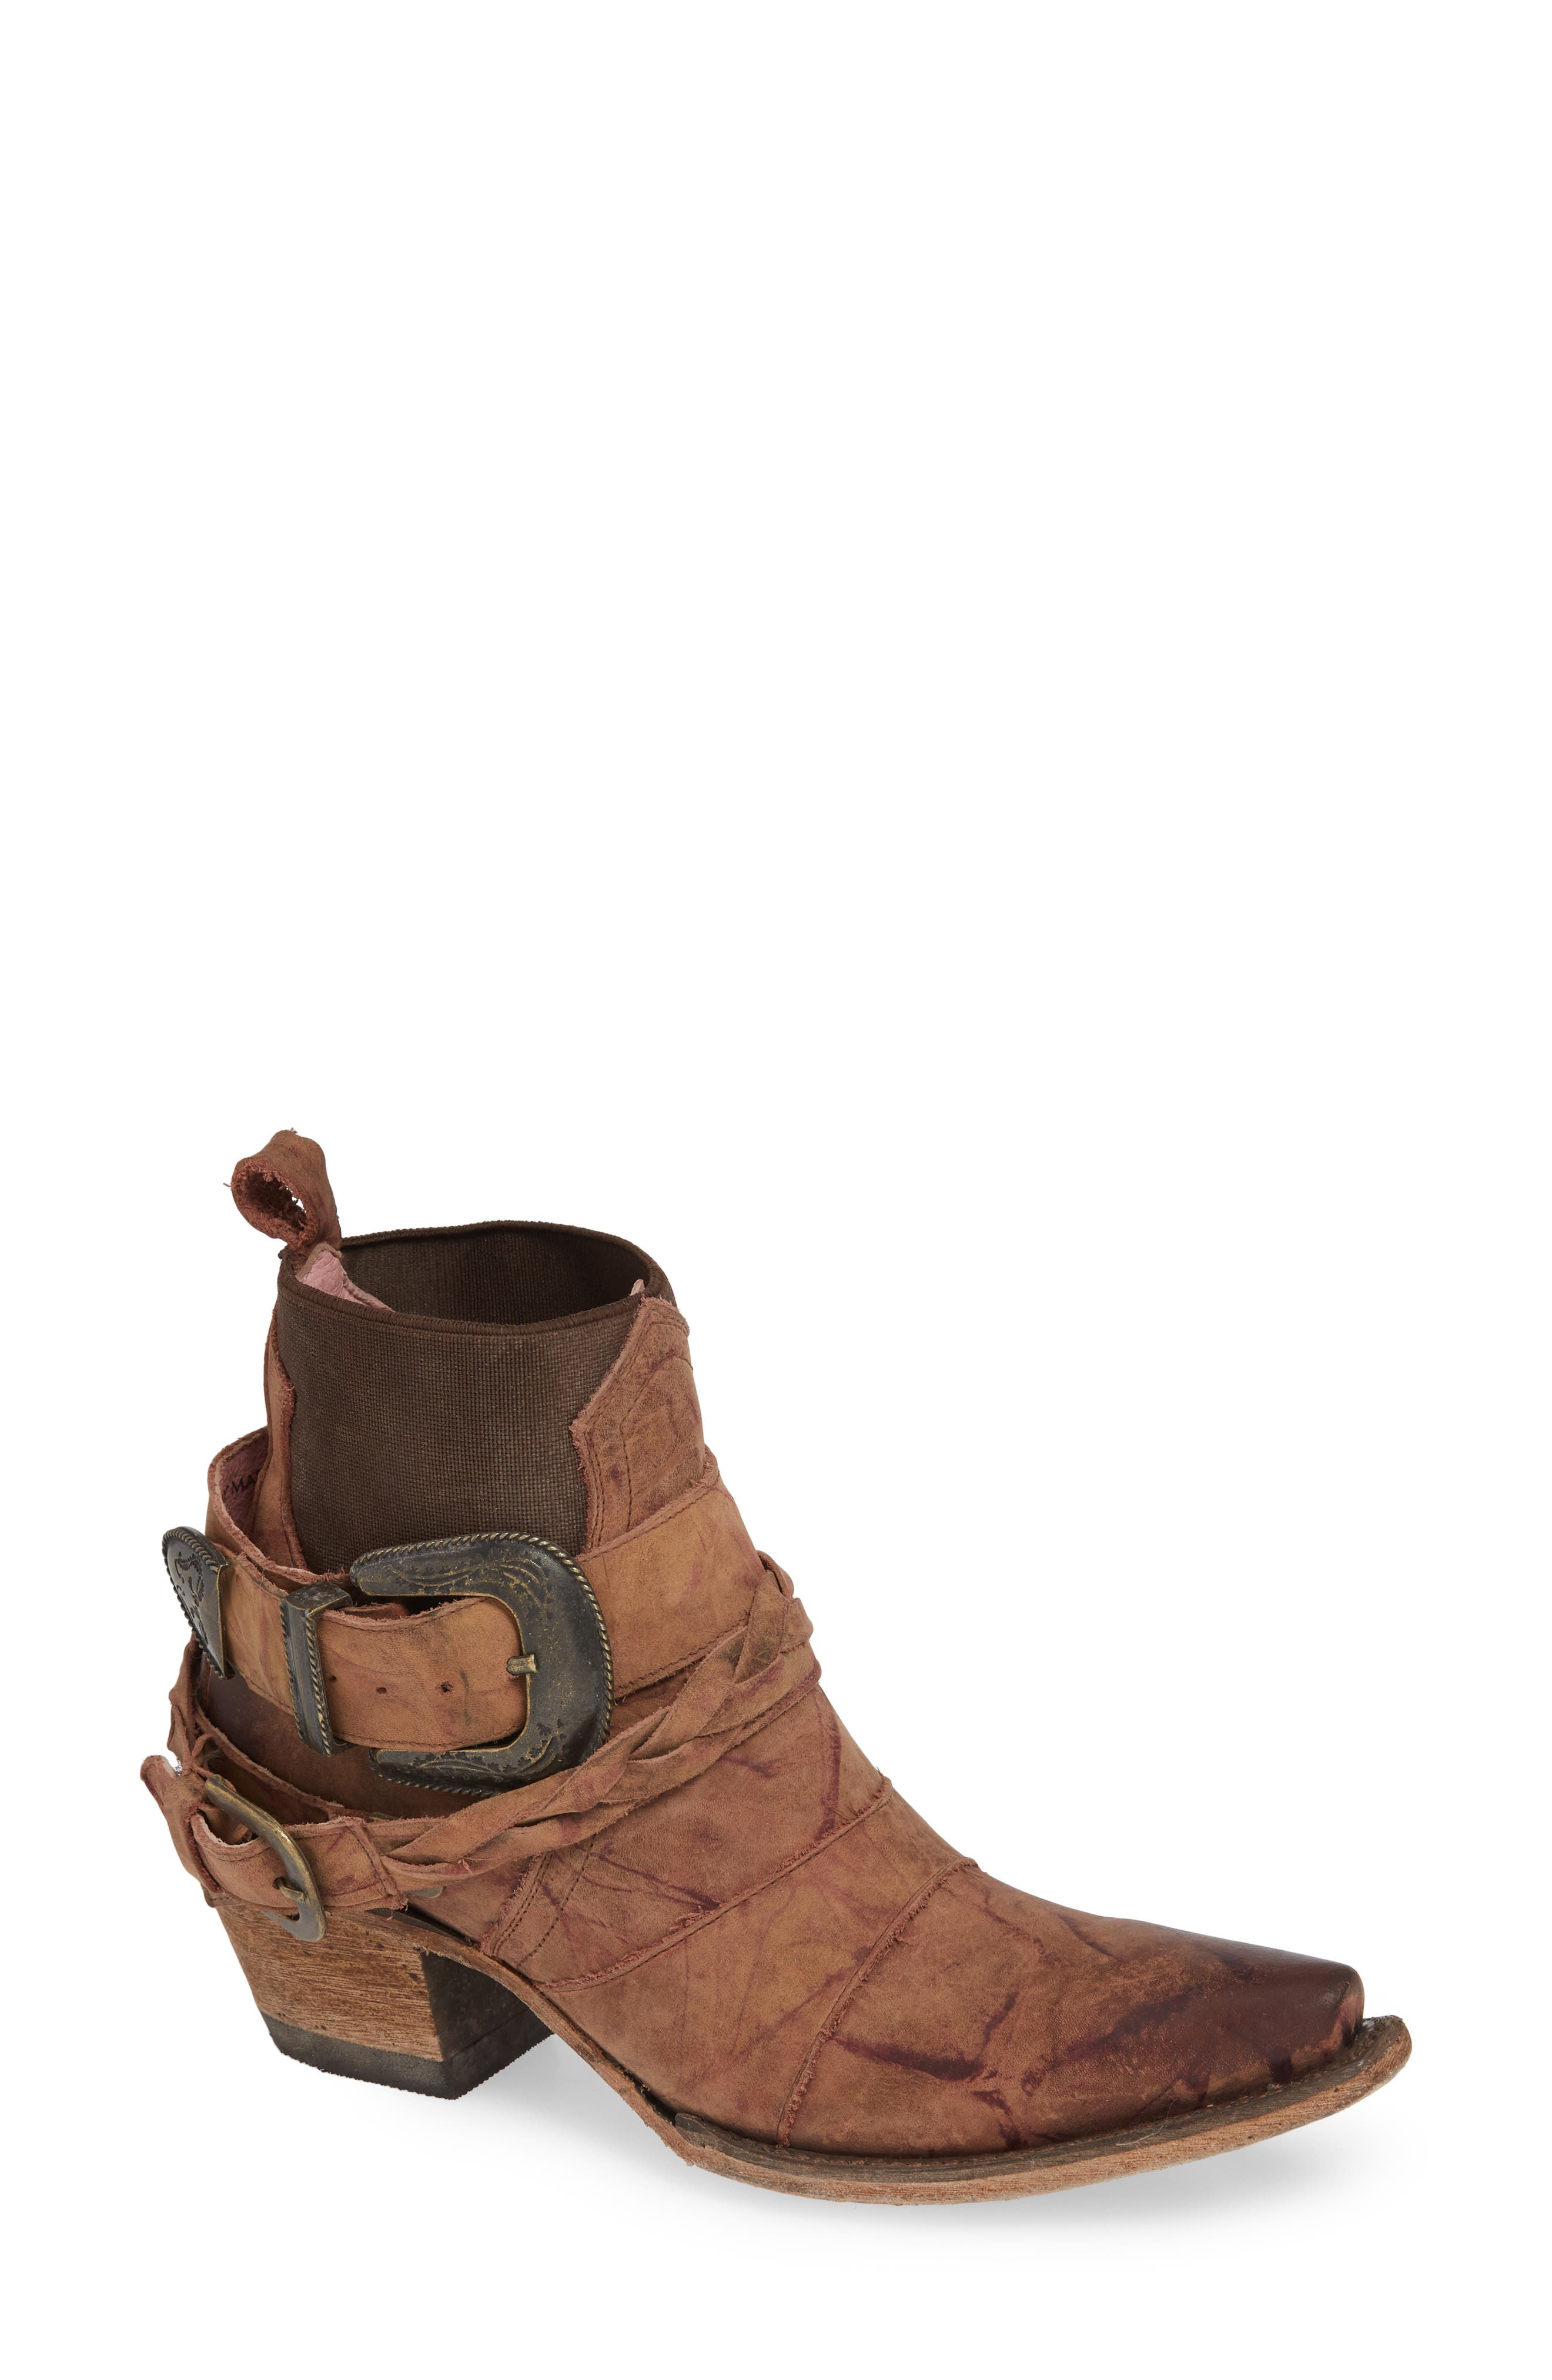 Lane Boots X Junk Gypsy Hwy 237 Bootie, Brown